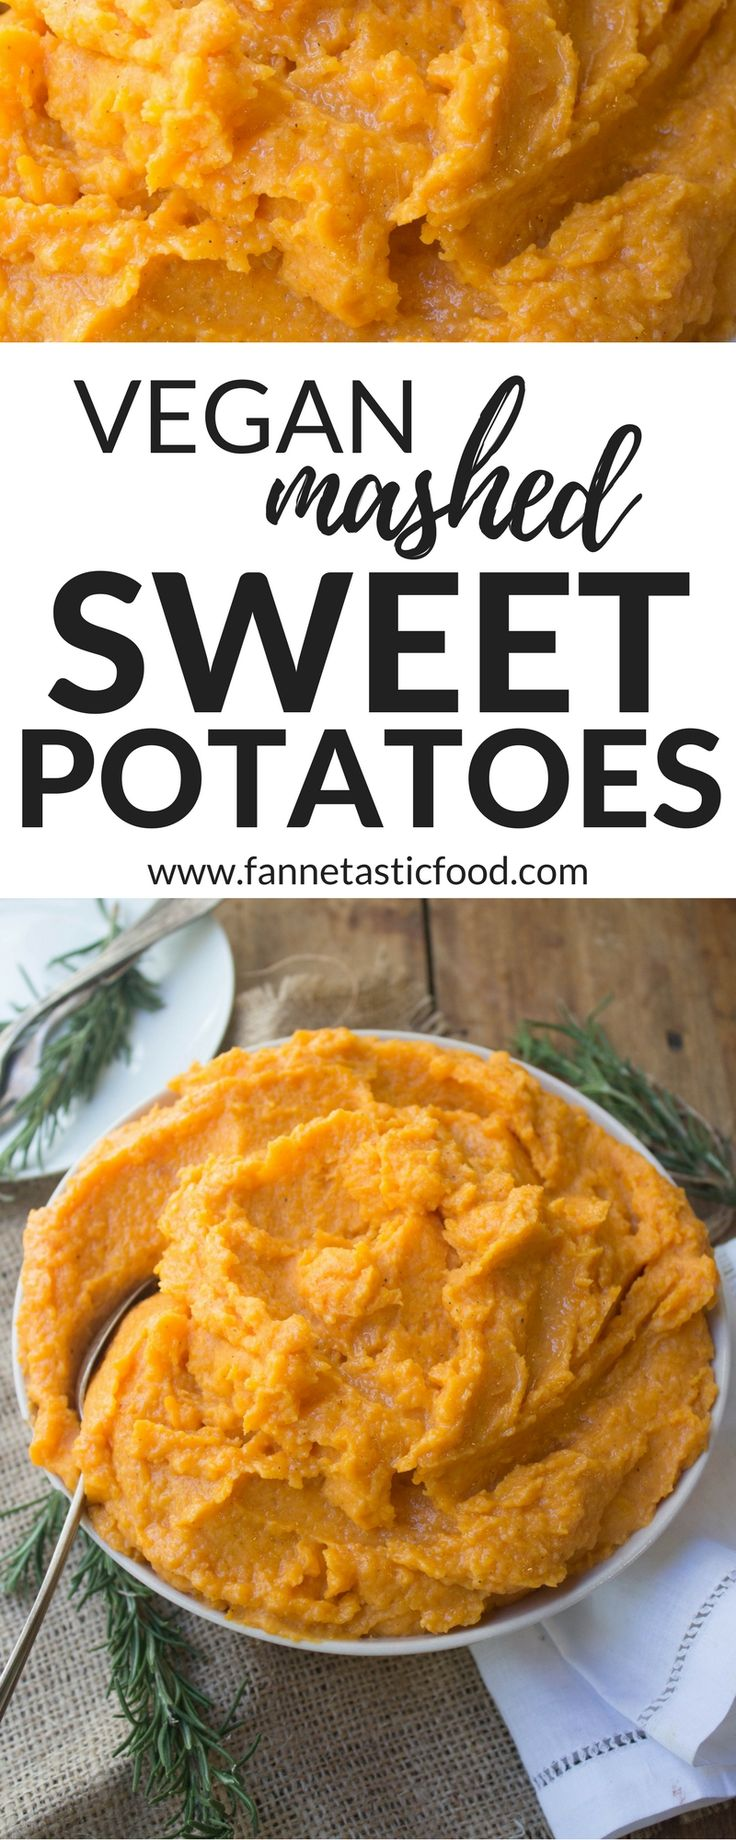 Vegan Mashed Sweet Potatoes - the most delicious, healthy side dish you can make in just minutes!